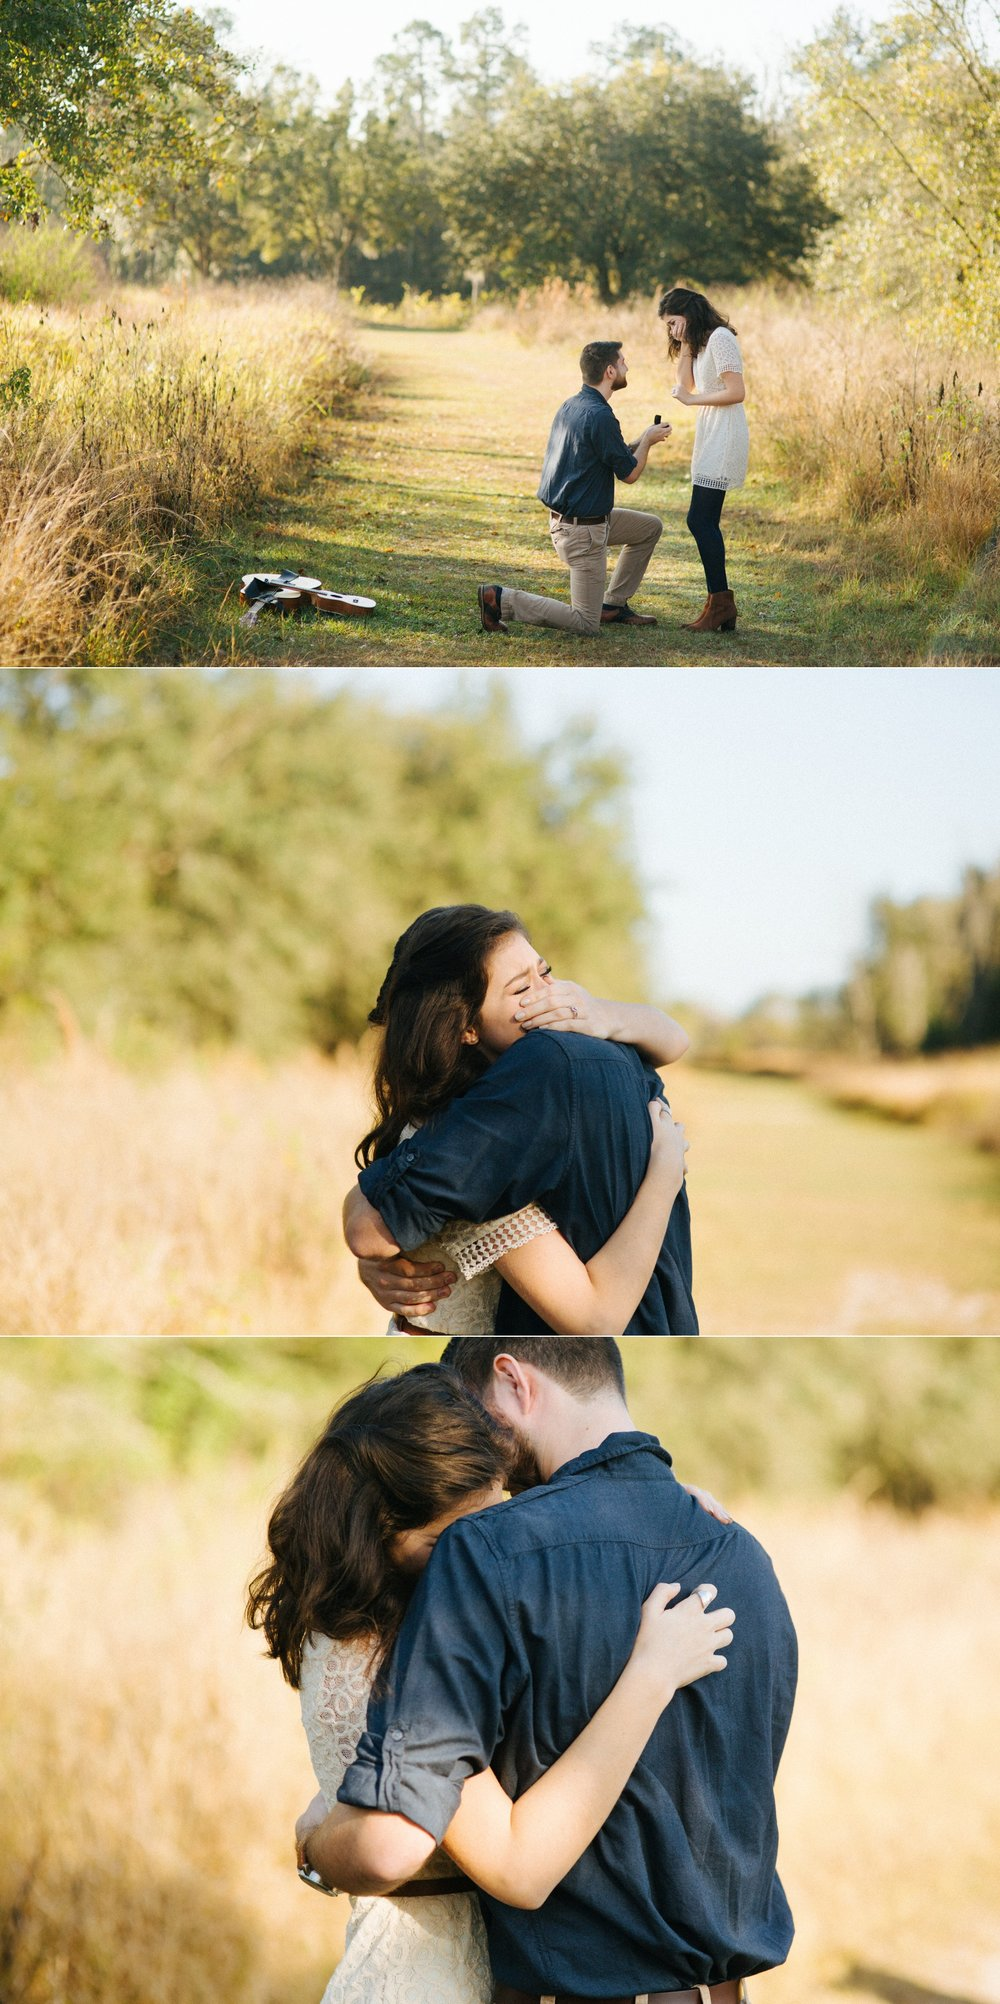 tampa engagement photographer jarrod kayleigh proposal jake and katie photography-006.jpg